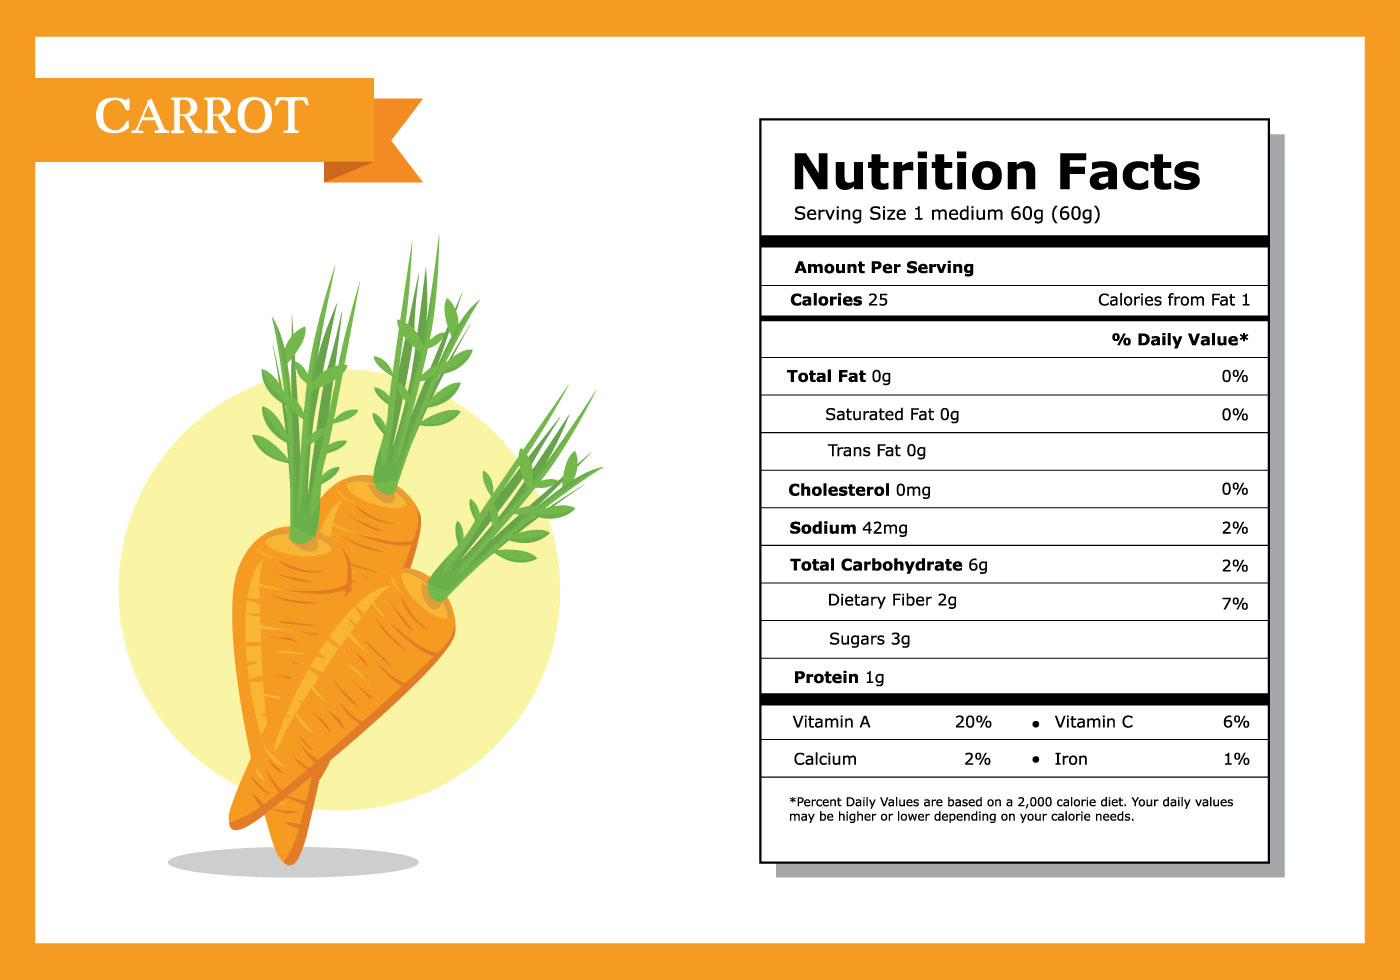 nutrition-facts-carrot-vector.jpg